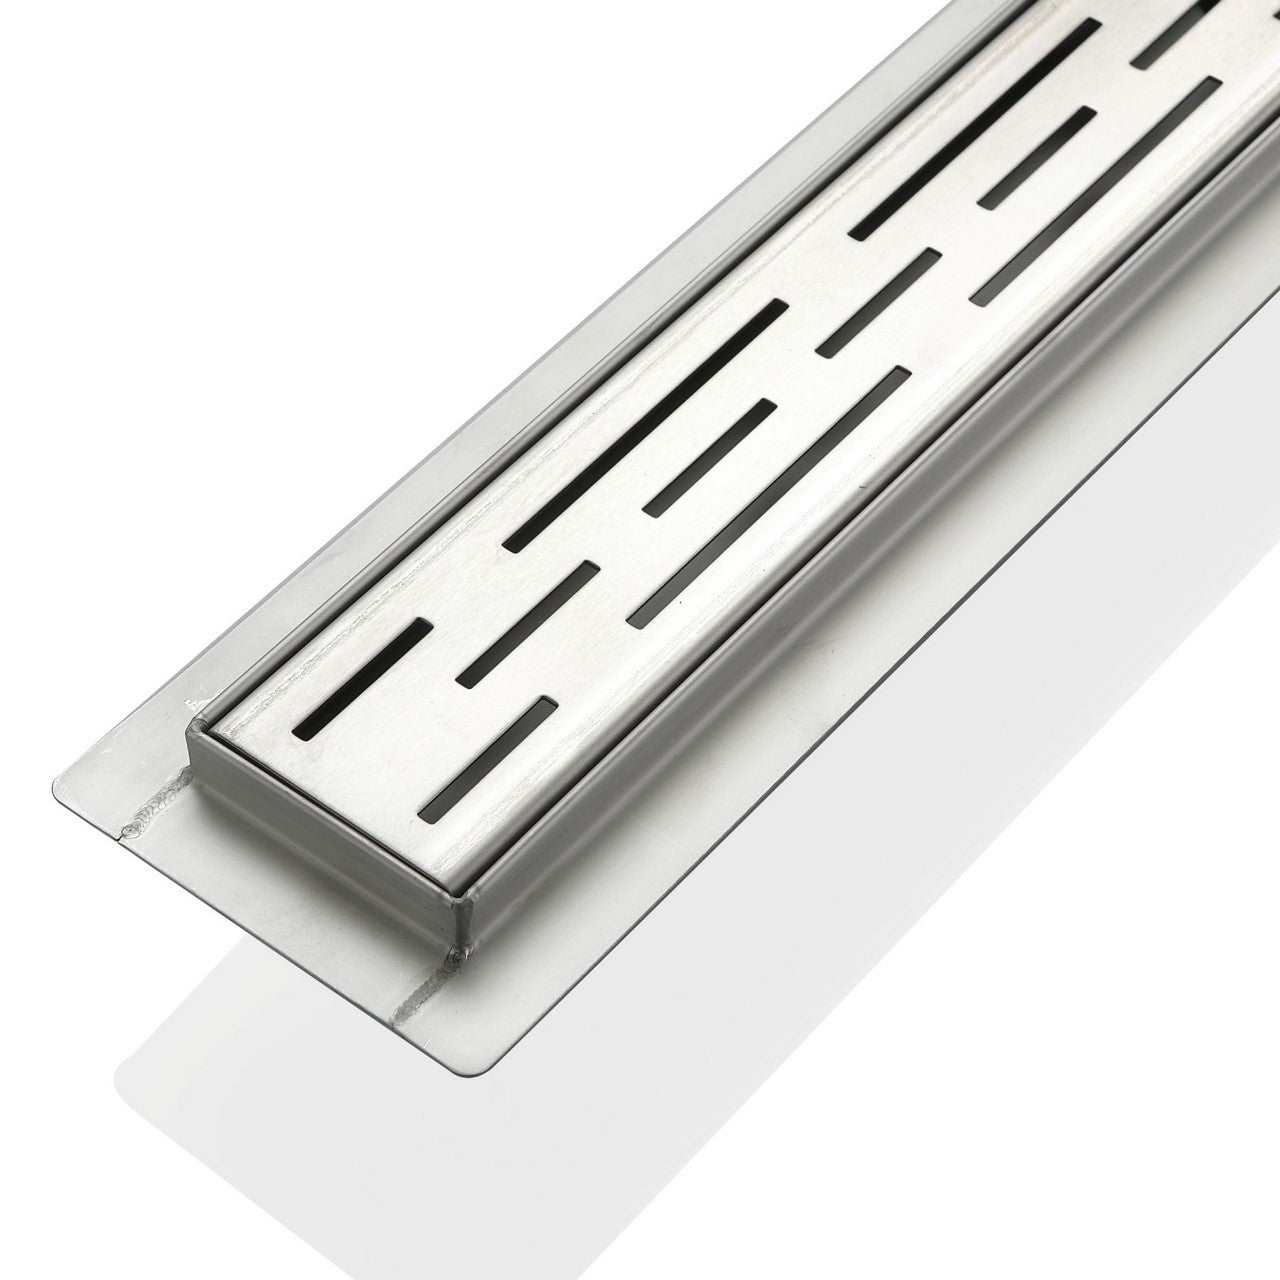 LINEAR GRATE- 28″ Stainless Steel Linear Shower Drain - Vanity Sale